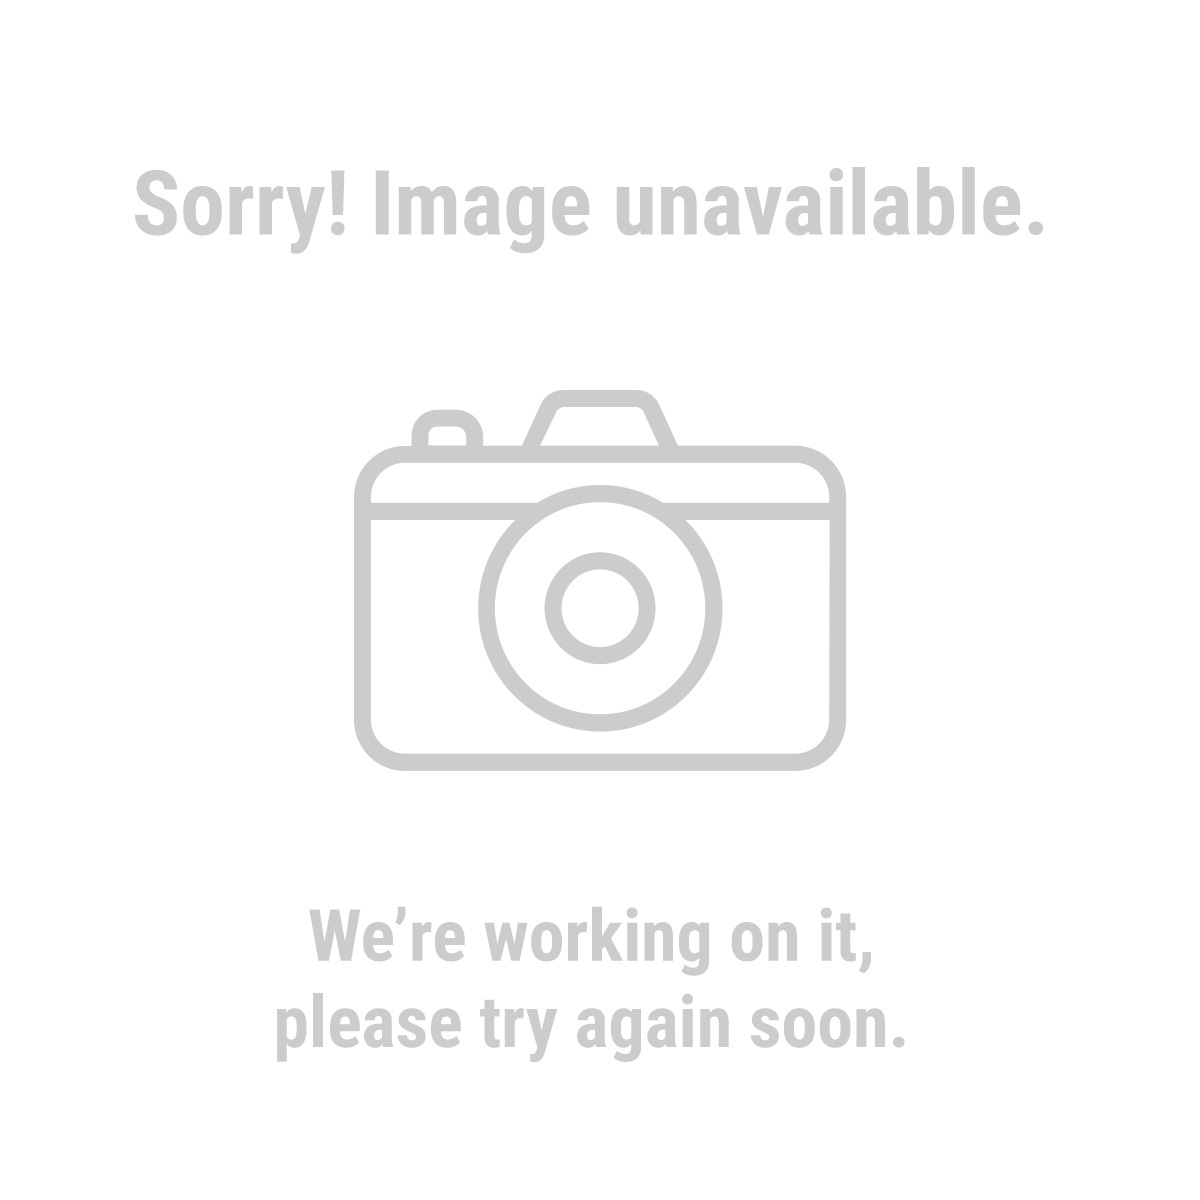 "Pittsburgh 67929 7 Piece 3/8"" Drive SAE Impact Swivel Socket Set"